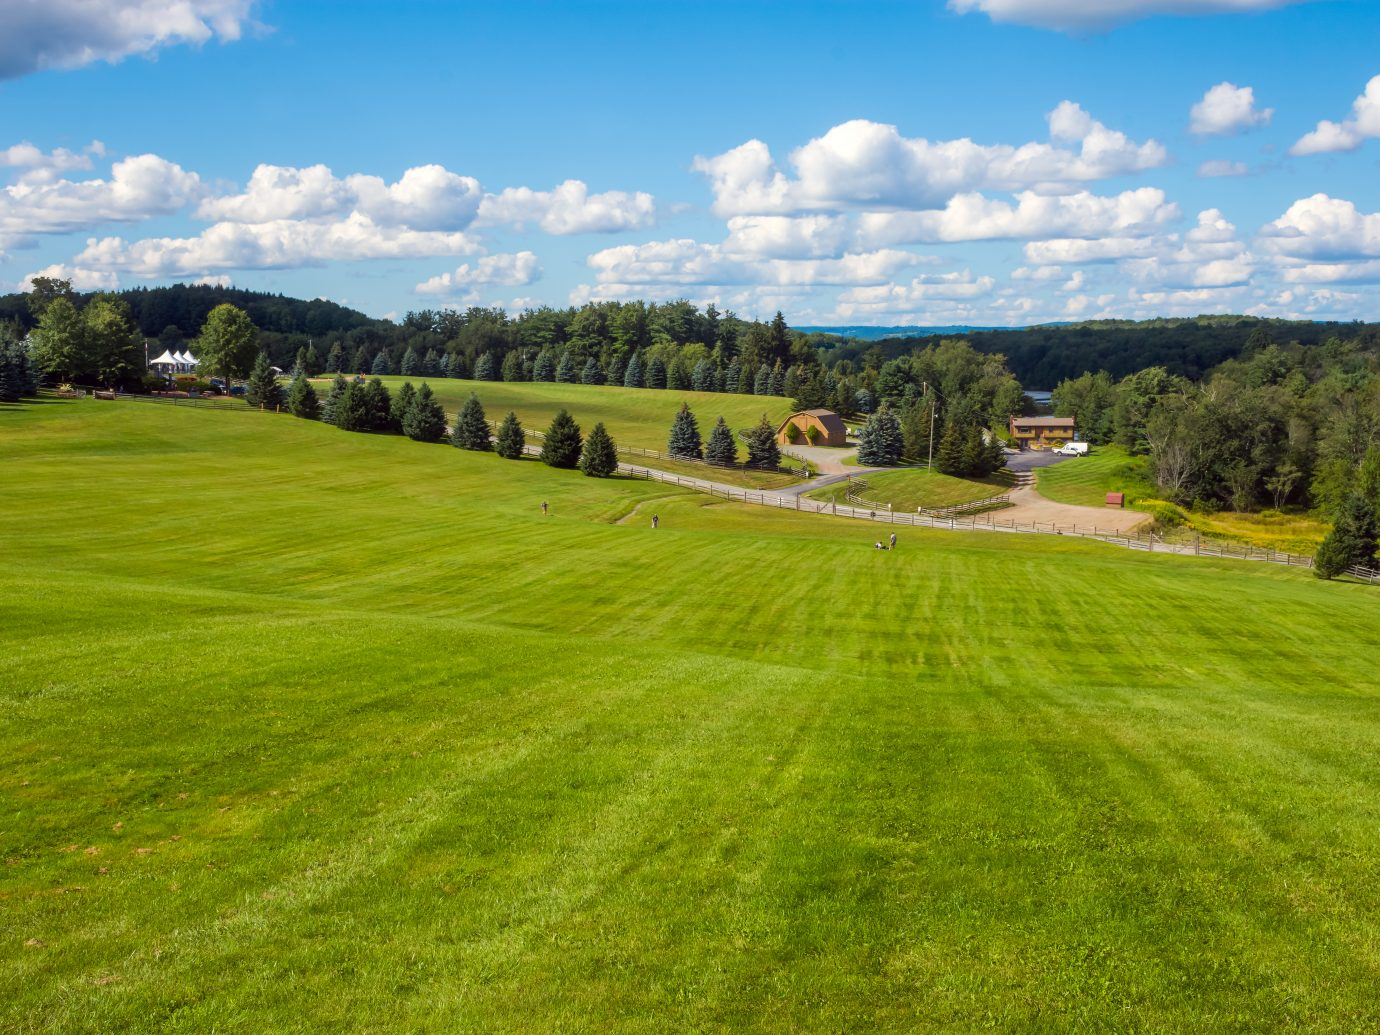 A view from the top of the hill of the Woodstock Concert grounds.